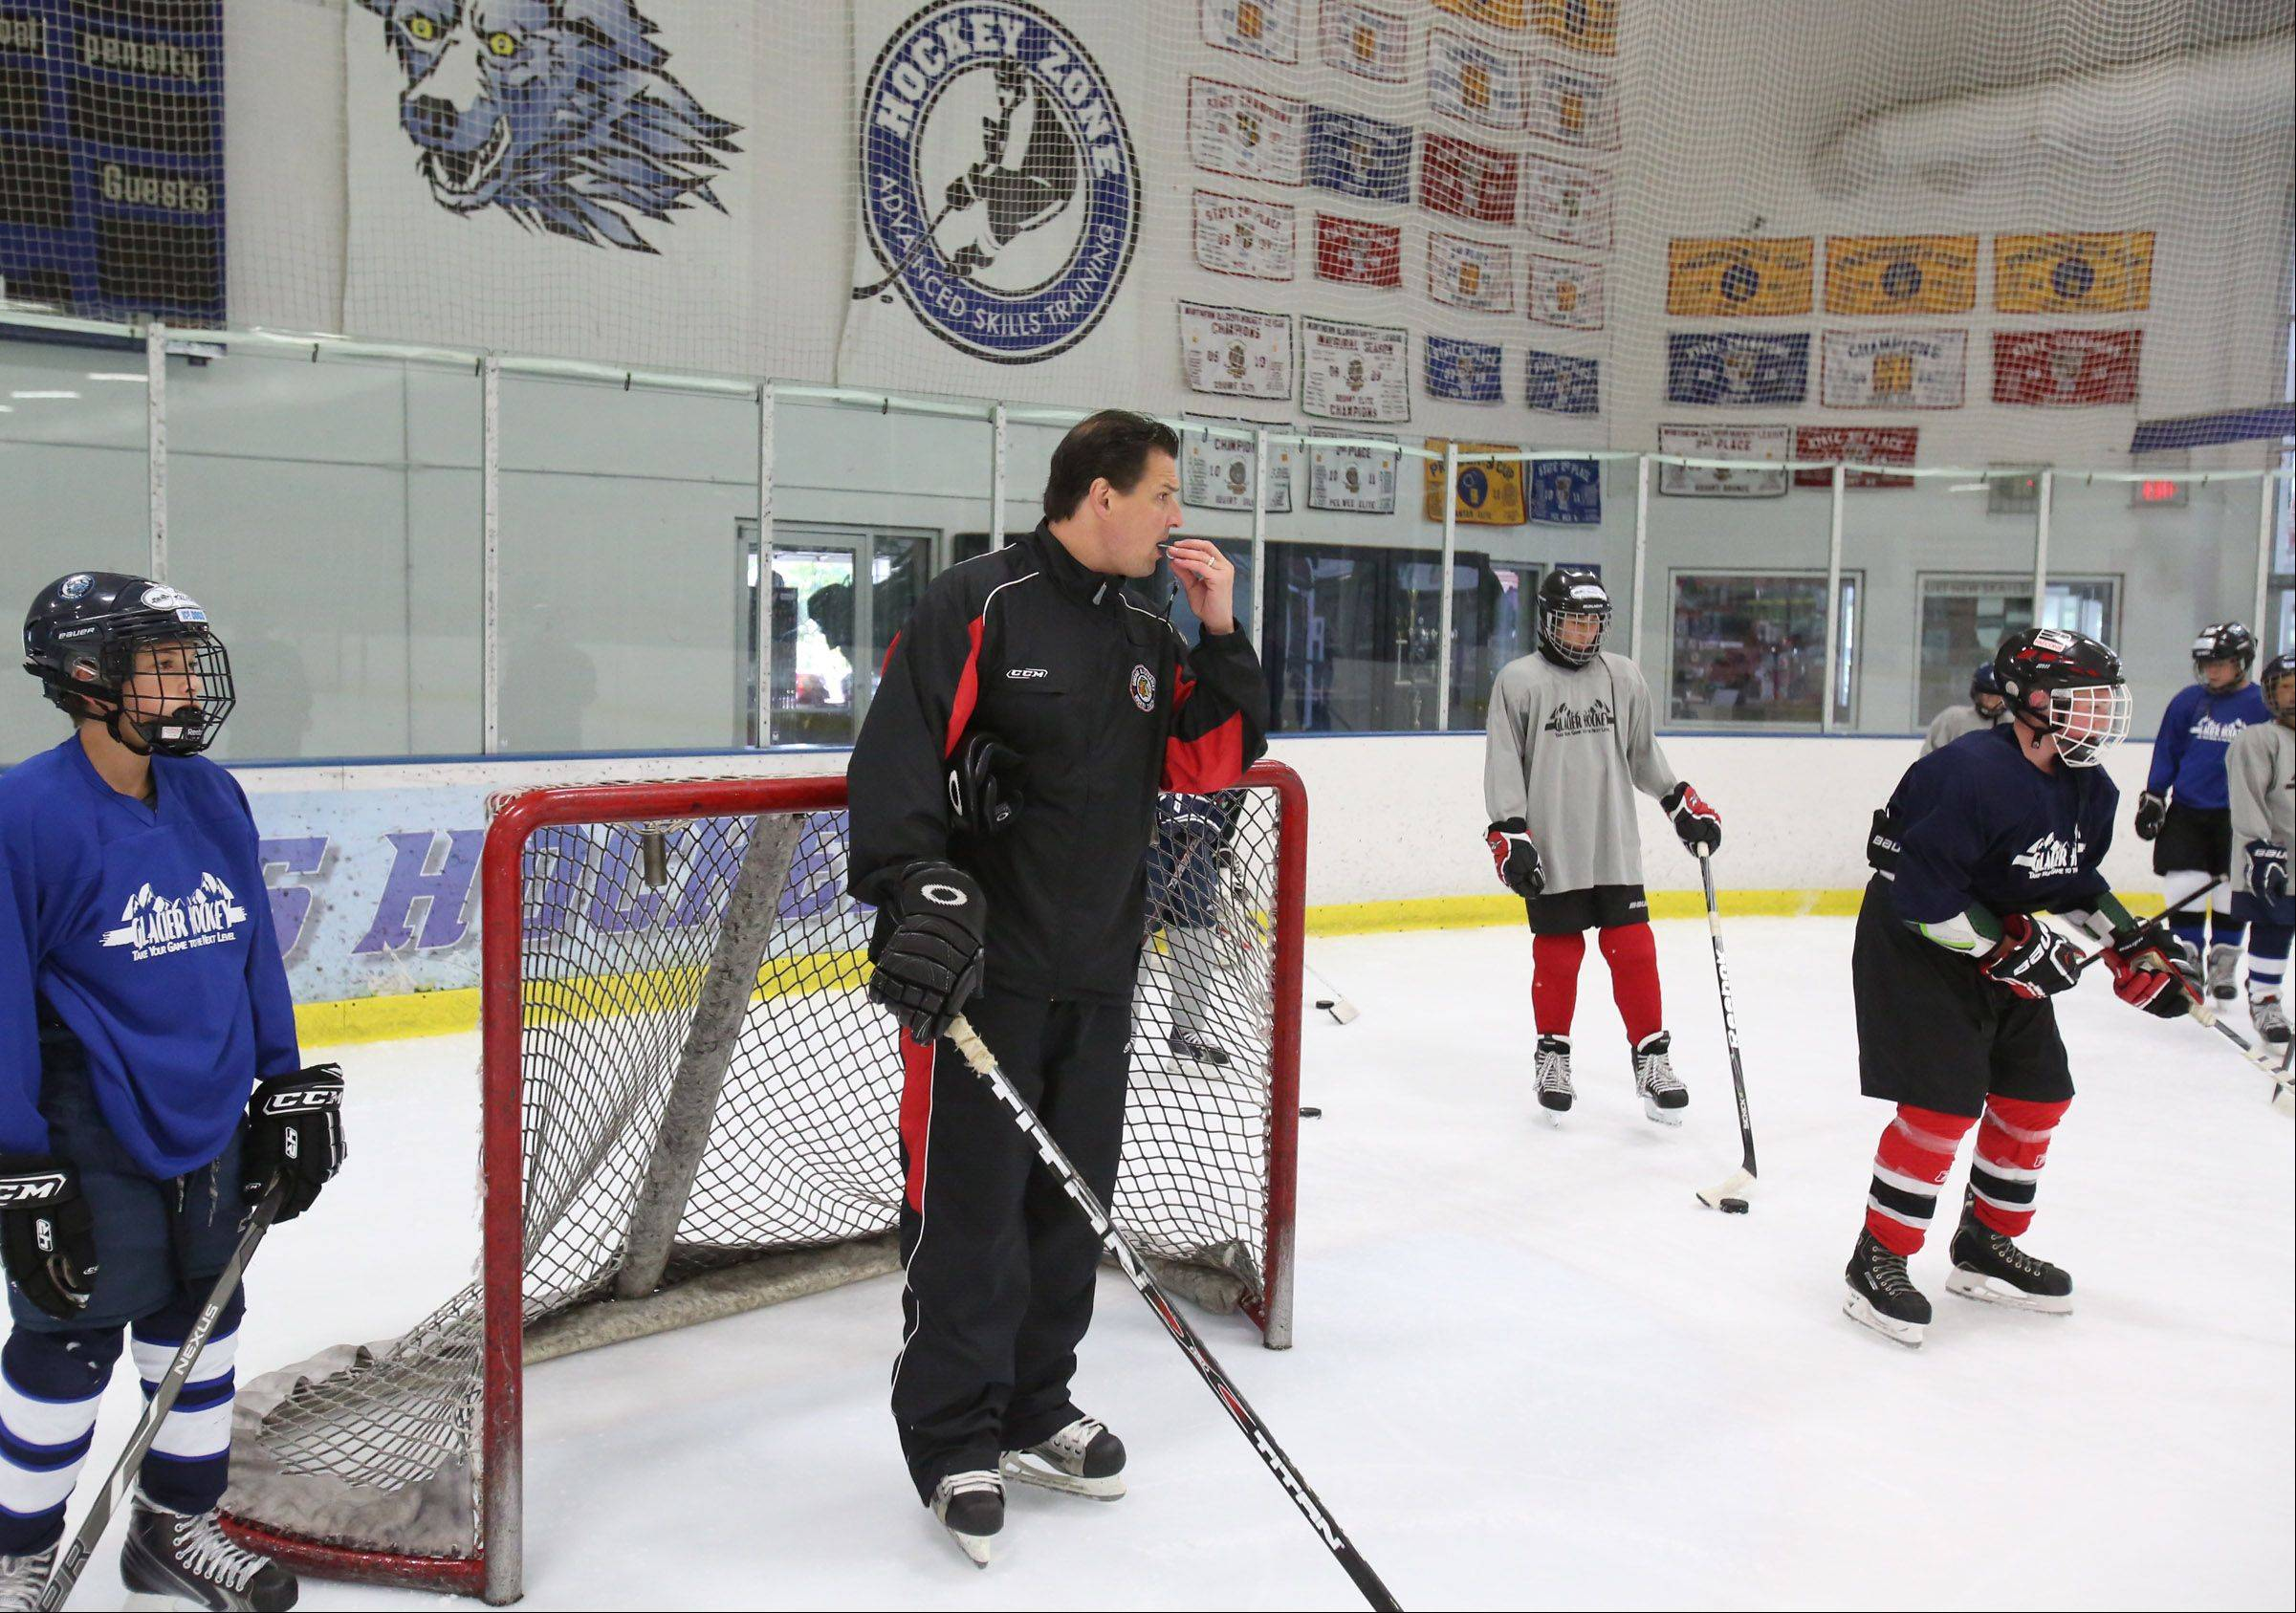 Eddie Olczyk, current television color analyst and former player for the Chicago Blackhawks, provides instruction during a hockey camp Friday at Glacier Ice Arena in Vernon Hills.